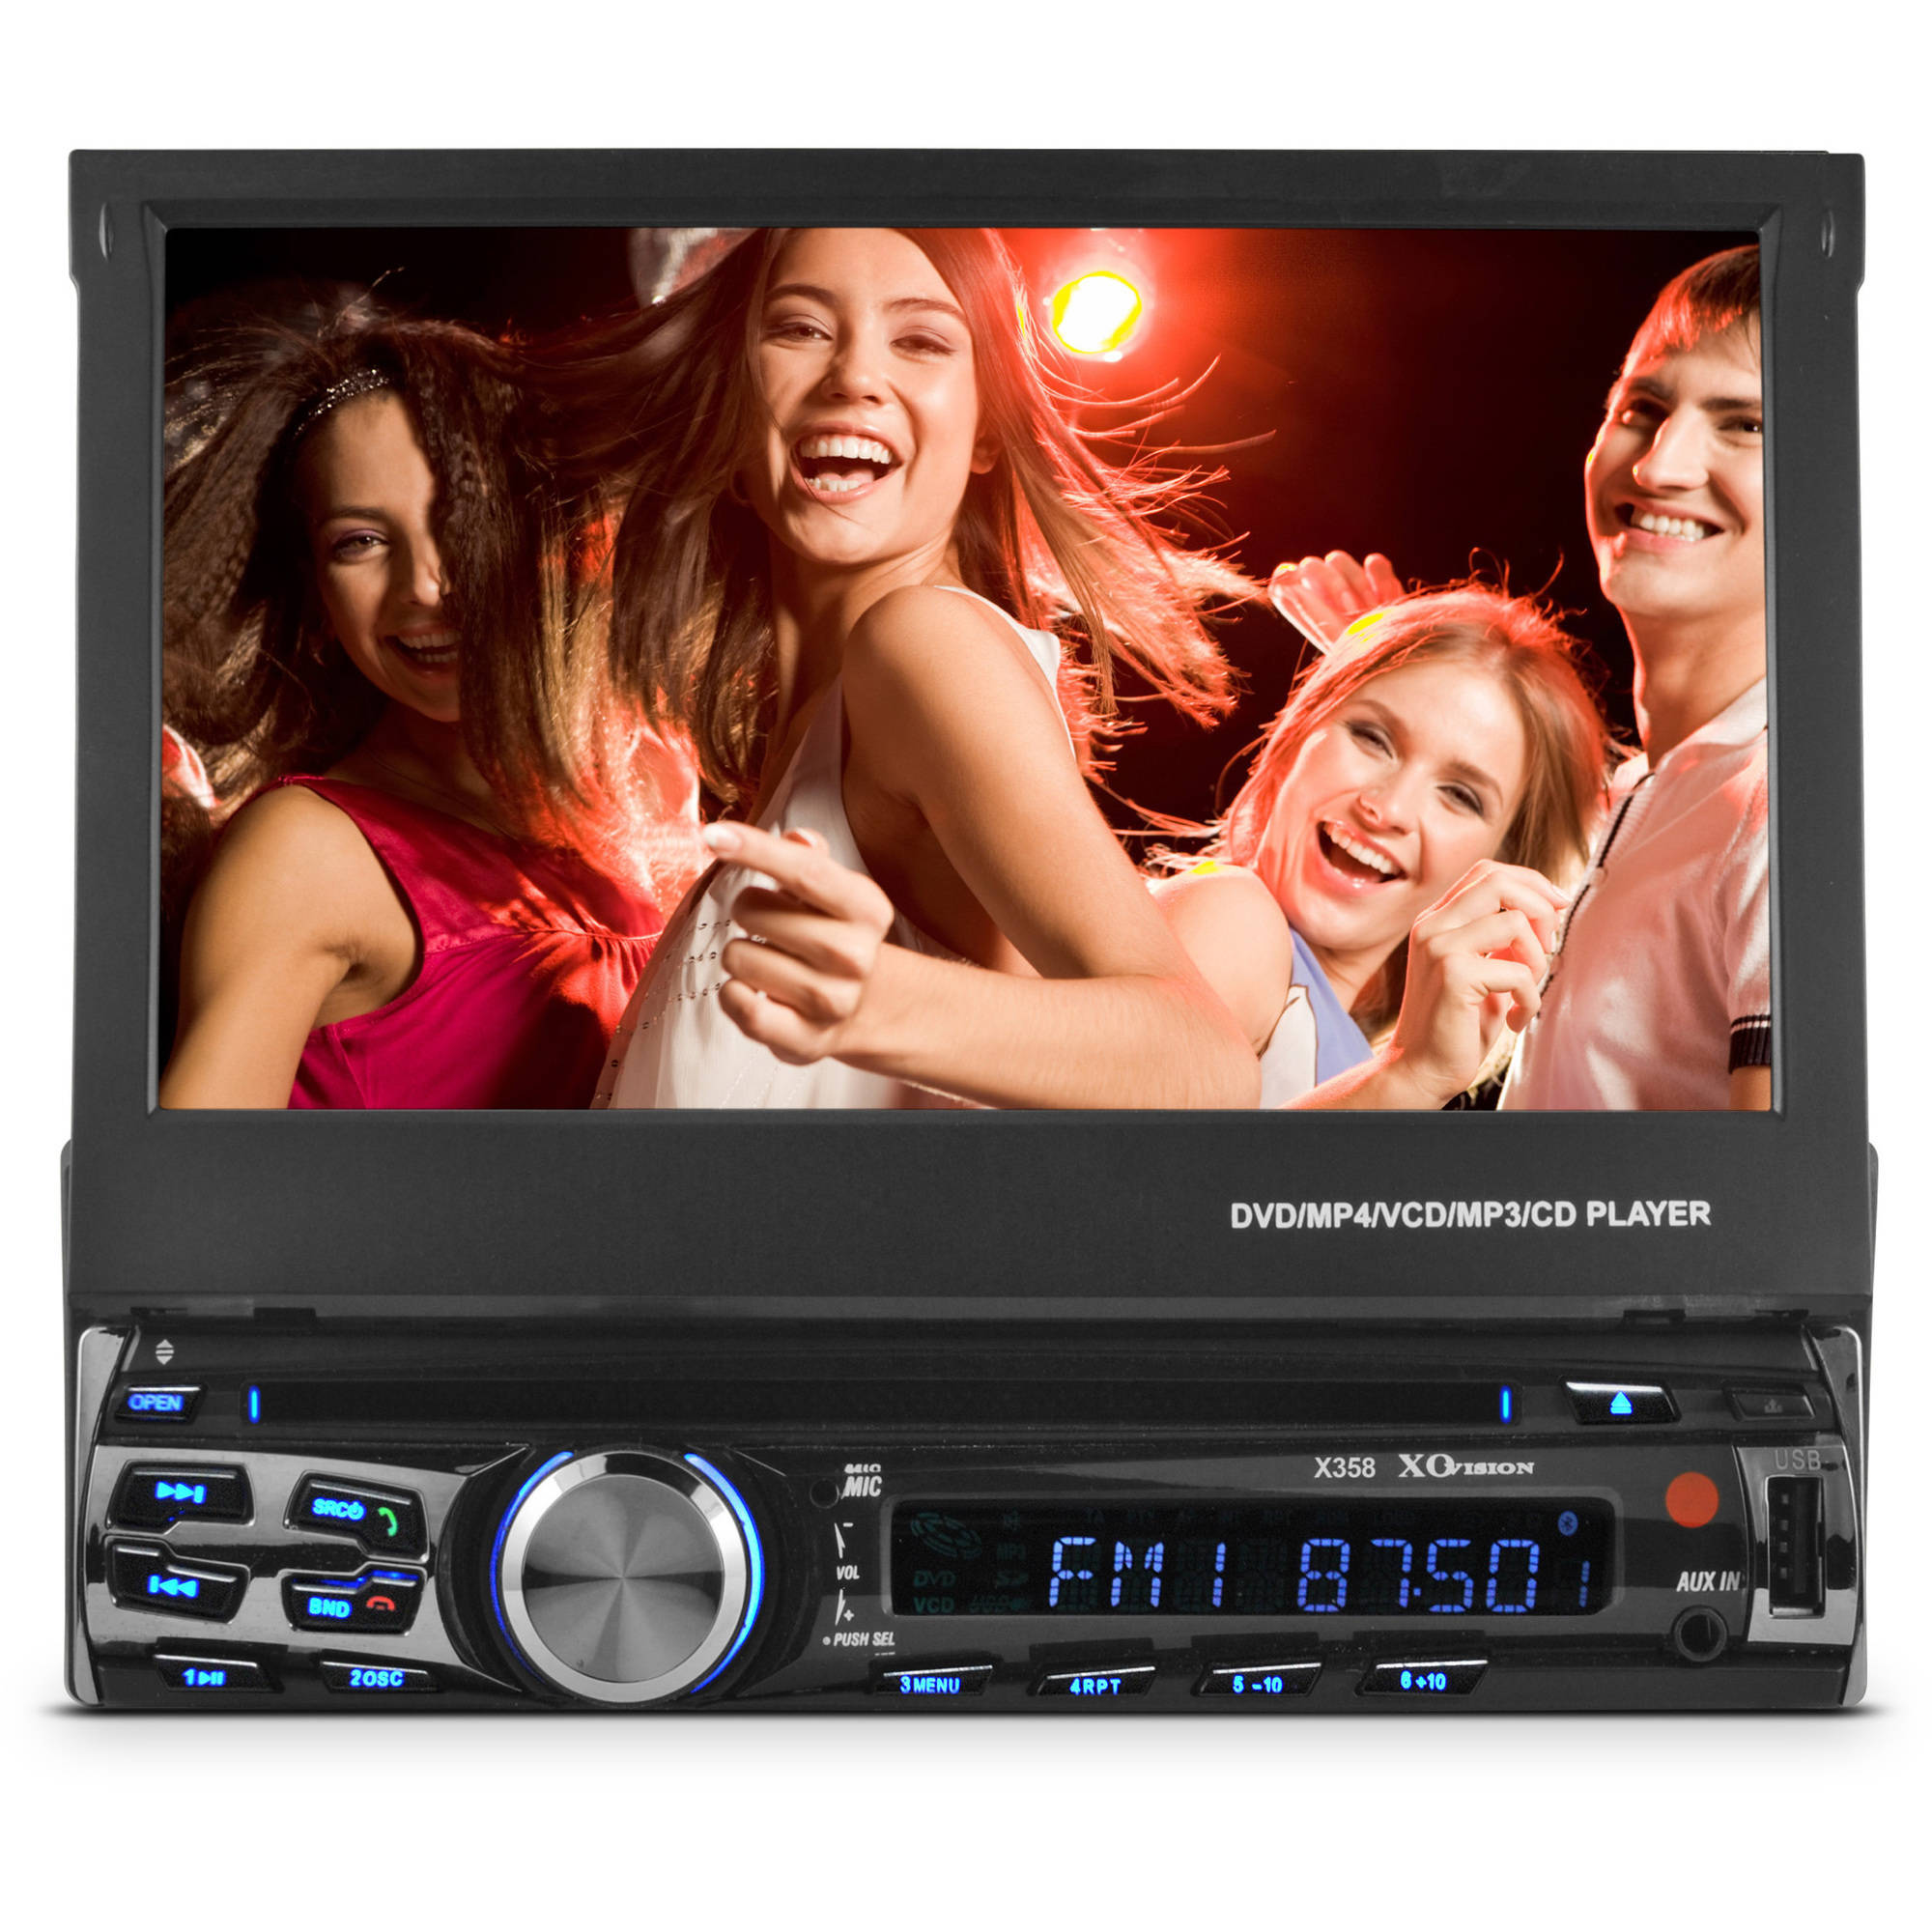 Dual Xdvd110bt 1 Din Car Dvd Cd Mp3 Player Flip Up Out 7 Lcd Plcm18bc Wiring Diagram Item Specifics